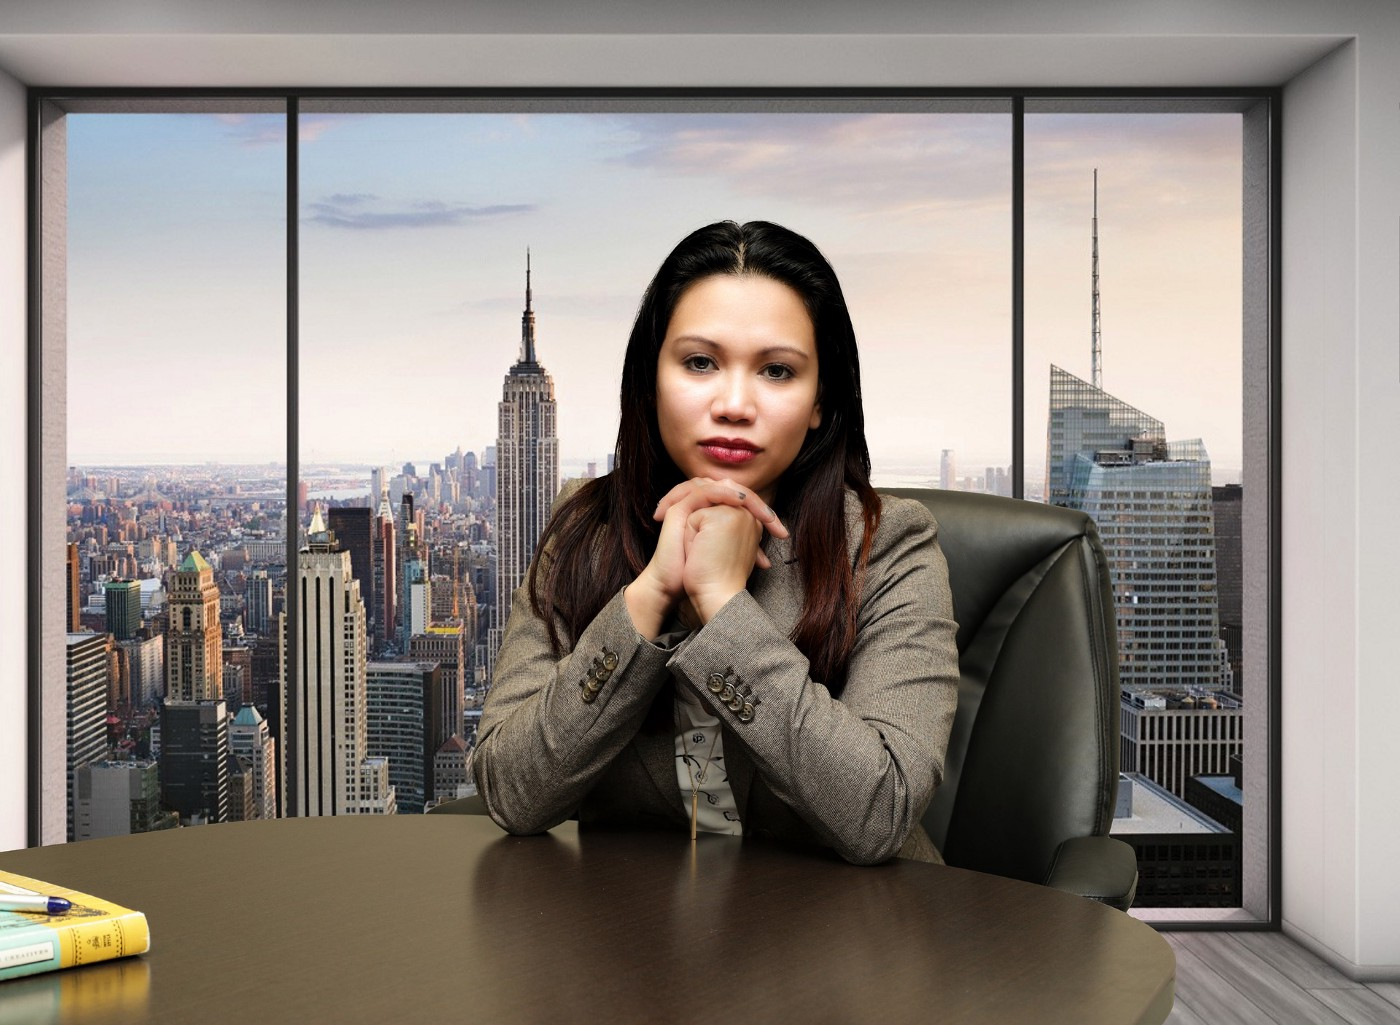 Asian woman professional sitting with her hand on the table. Behind her there is city skyline visible through glass window.